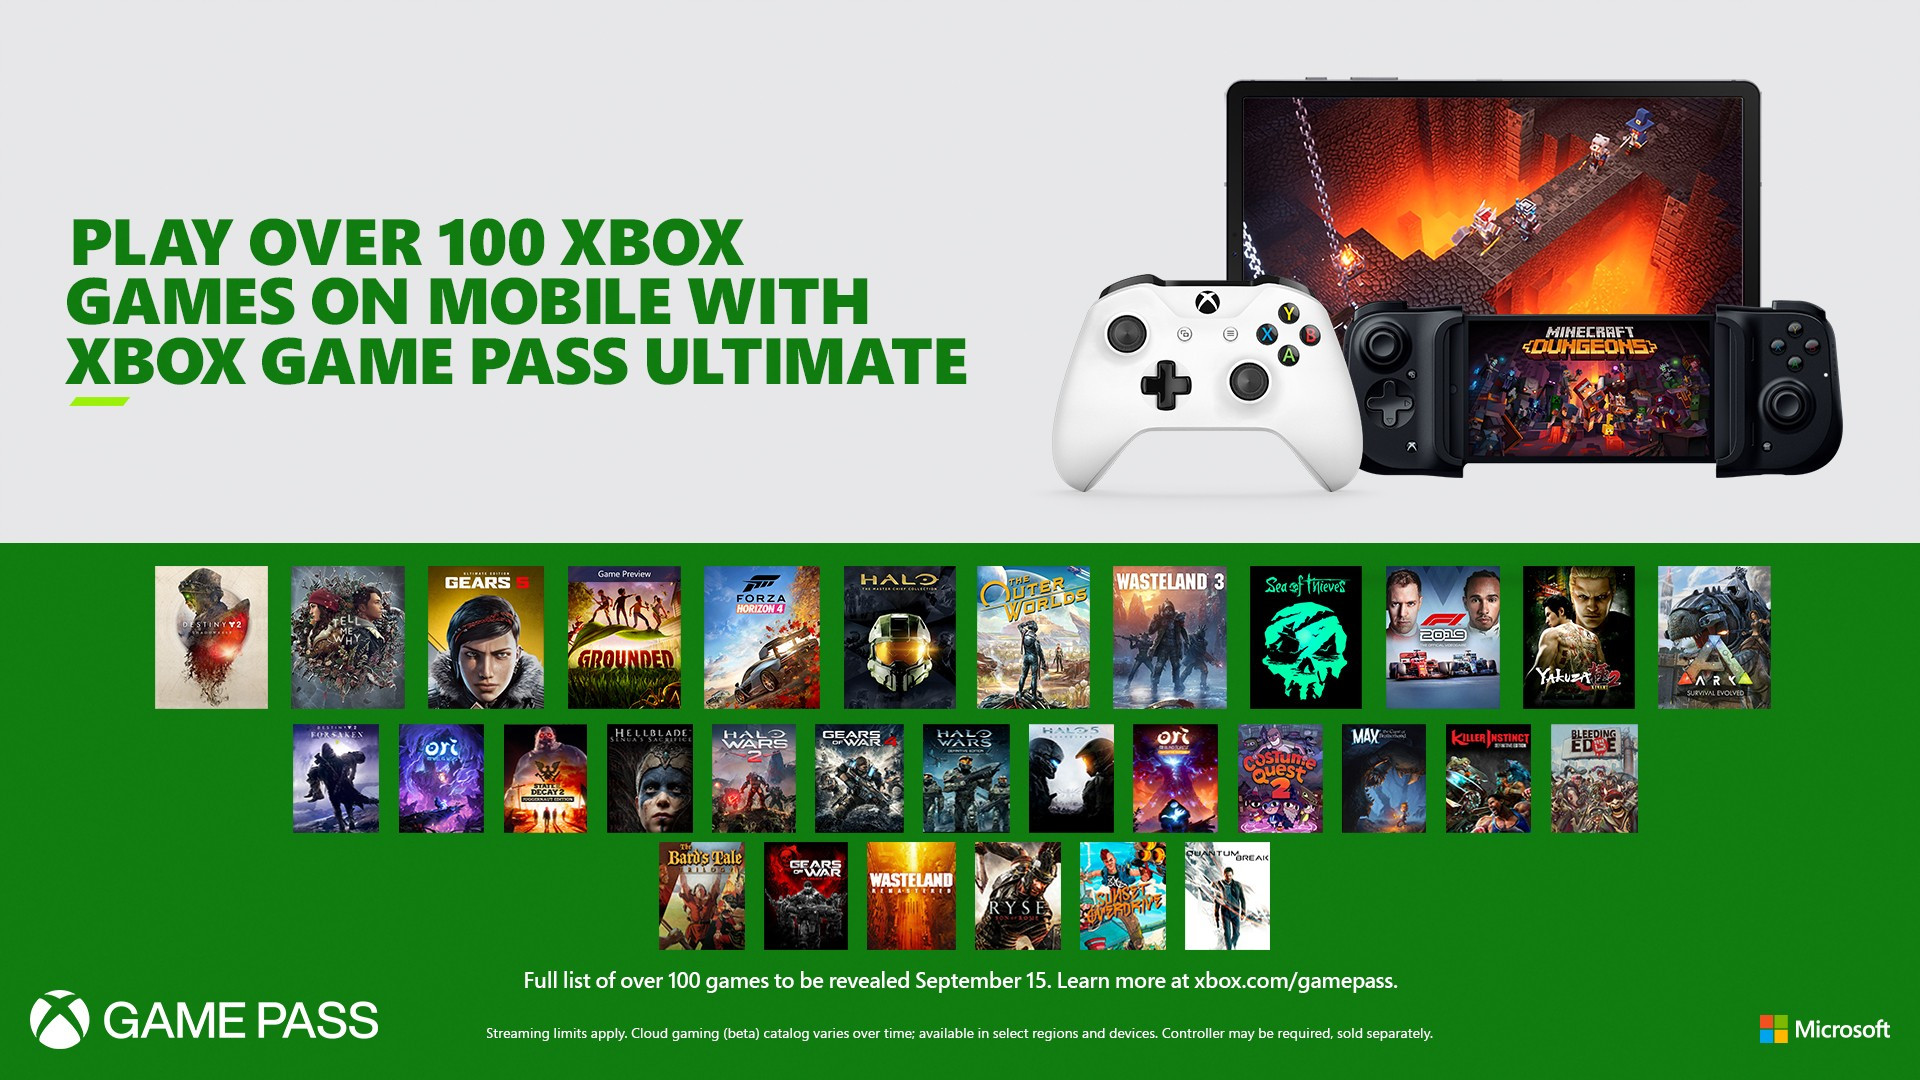 Xbox Game Pass and xCloud officially merge on September 15